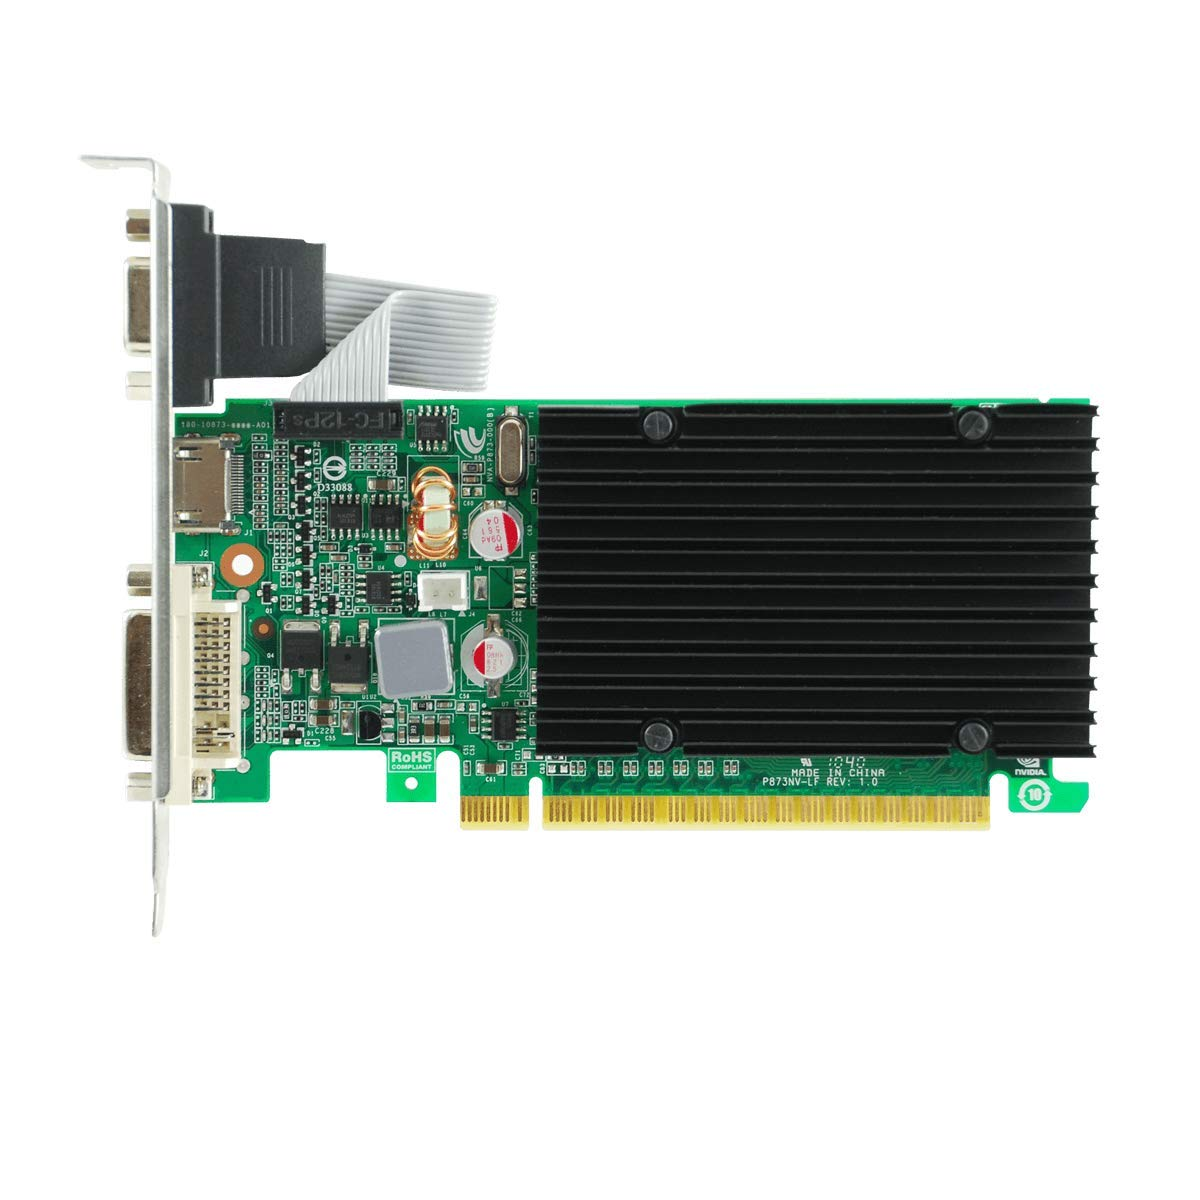 EVGA GeForce 210 Passive 1024 MB DDR3 PCI Express 2.0 DVI/HDMI/VGA Graphics Card, 01G-P3-1313-KR by EVGA (Image #6)